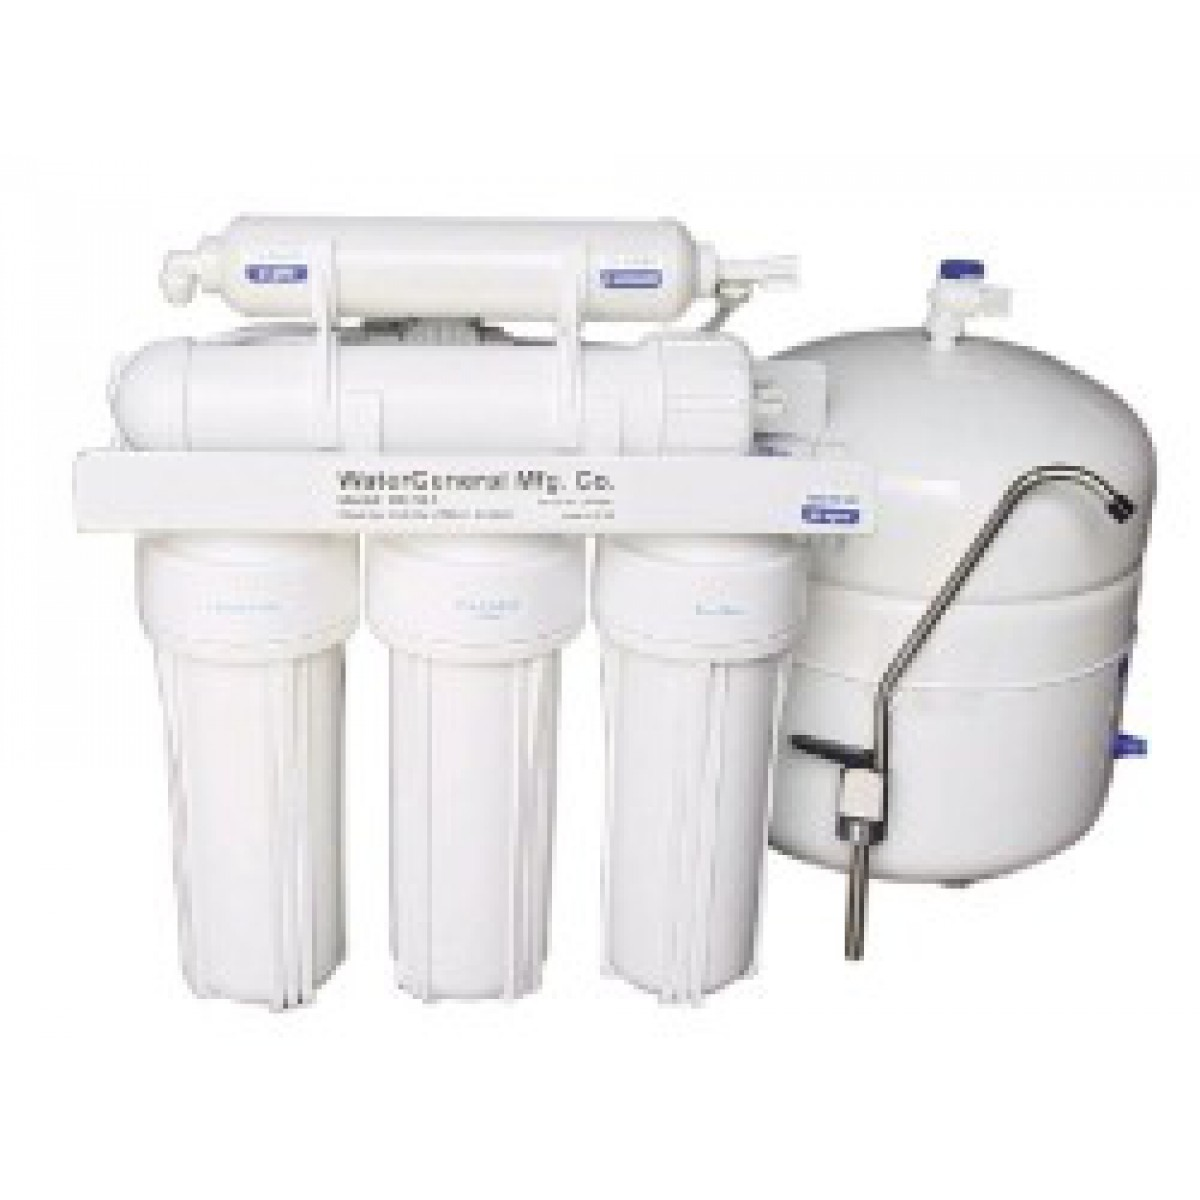 Water General Ro585 Reverse Osmosis System Water Filters